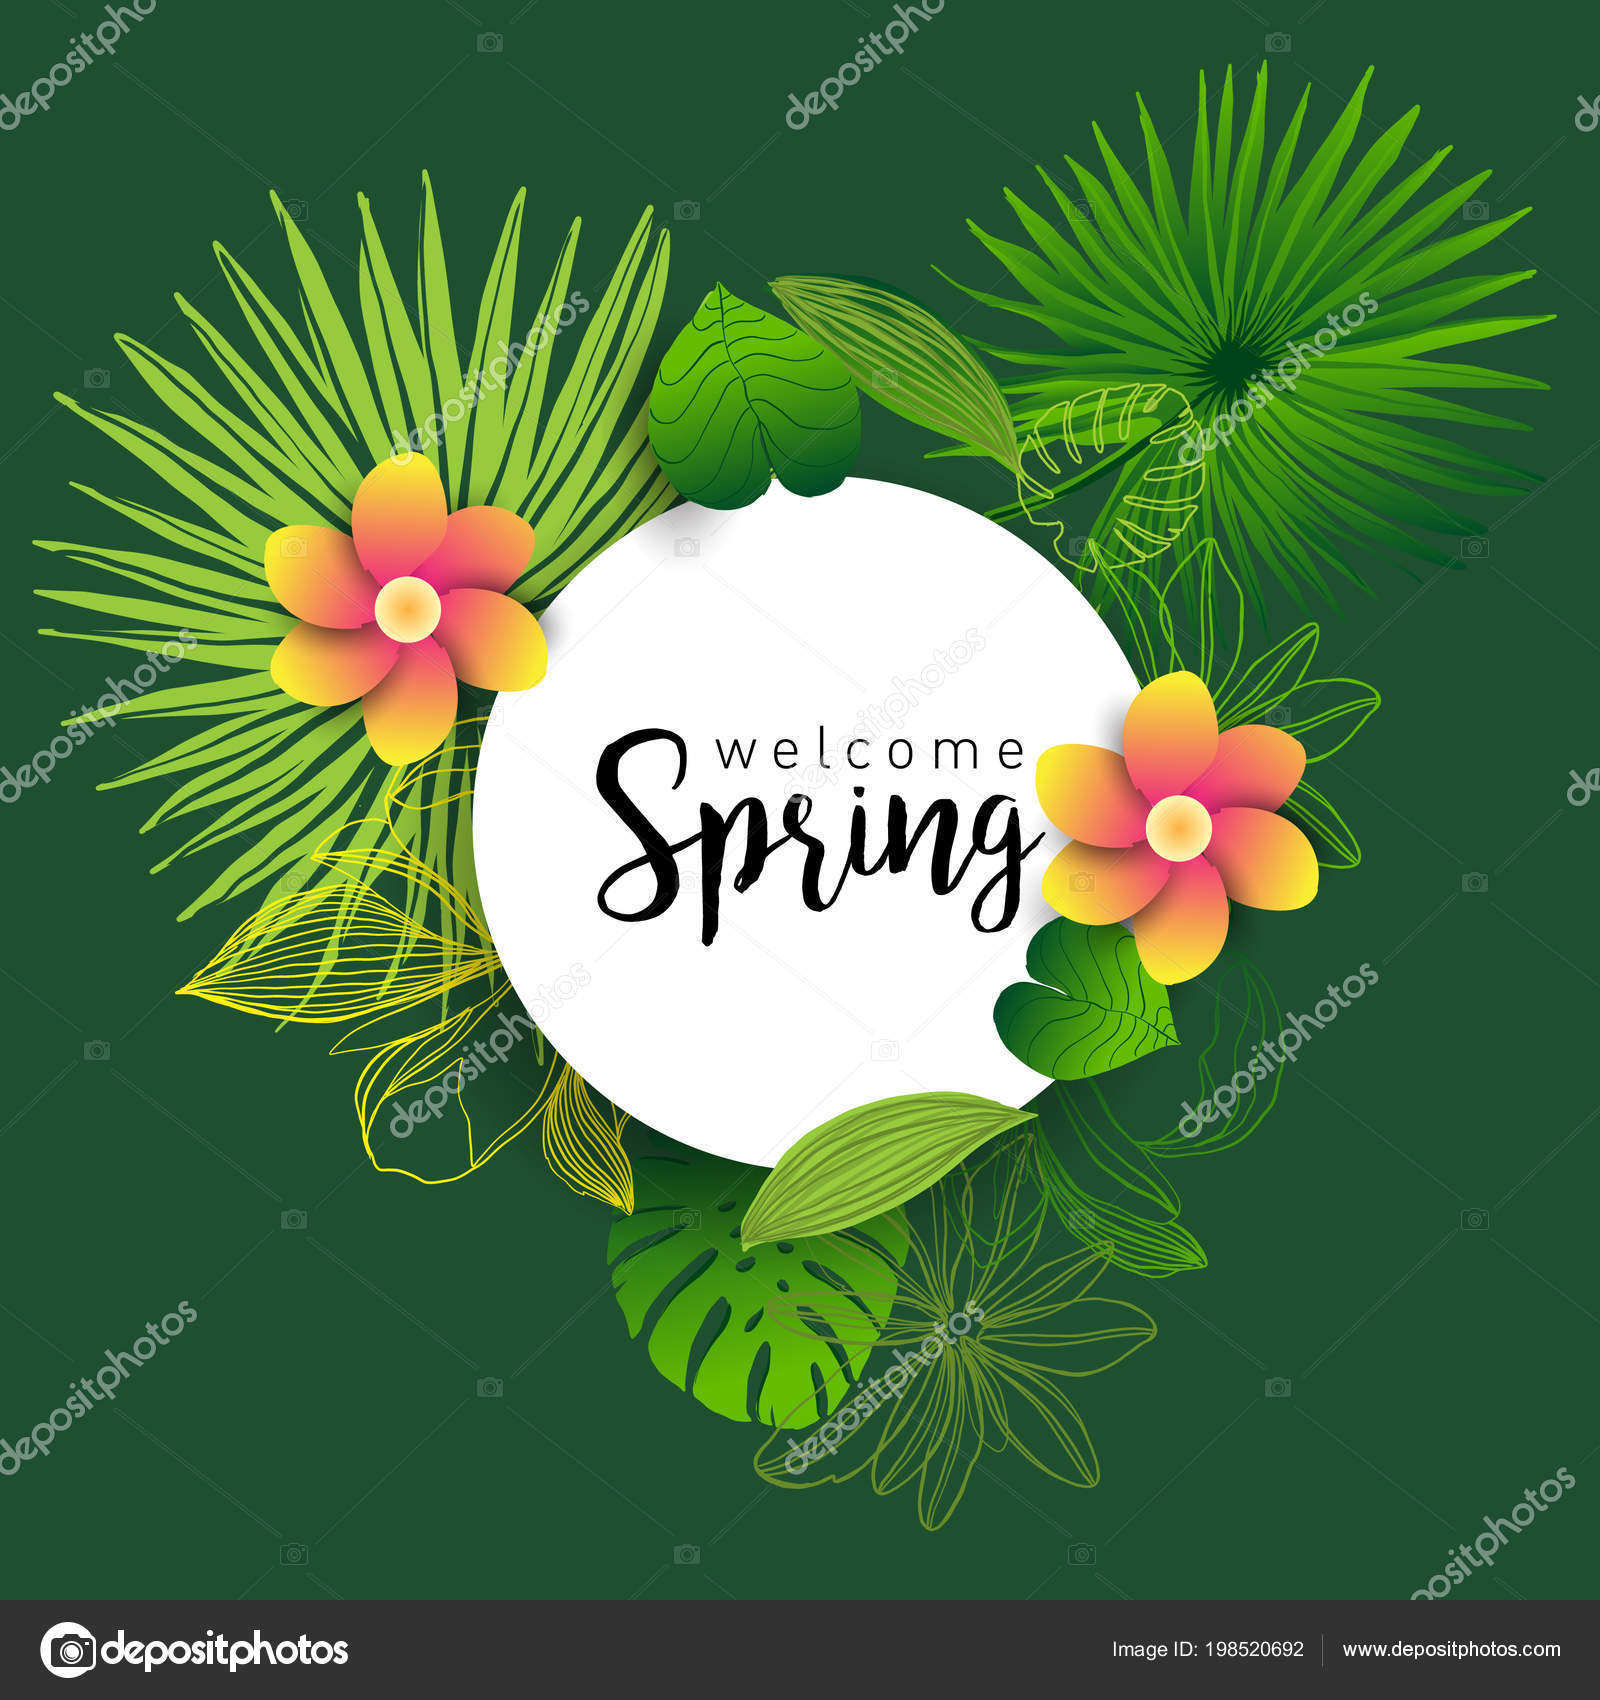 Welcome Spring Trendy Banner Leaves Tropical Plants Flowers Hand Drawn